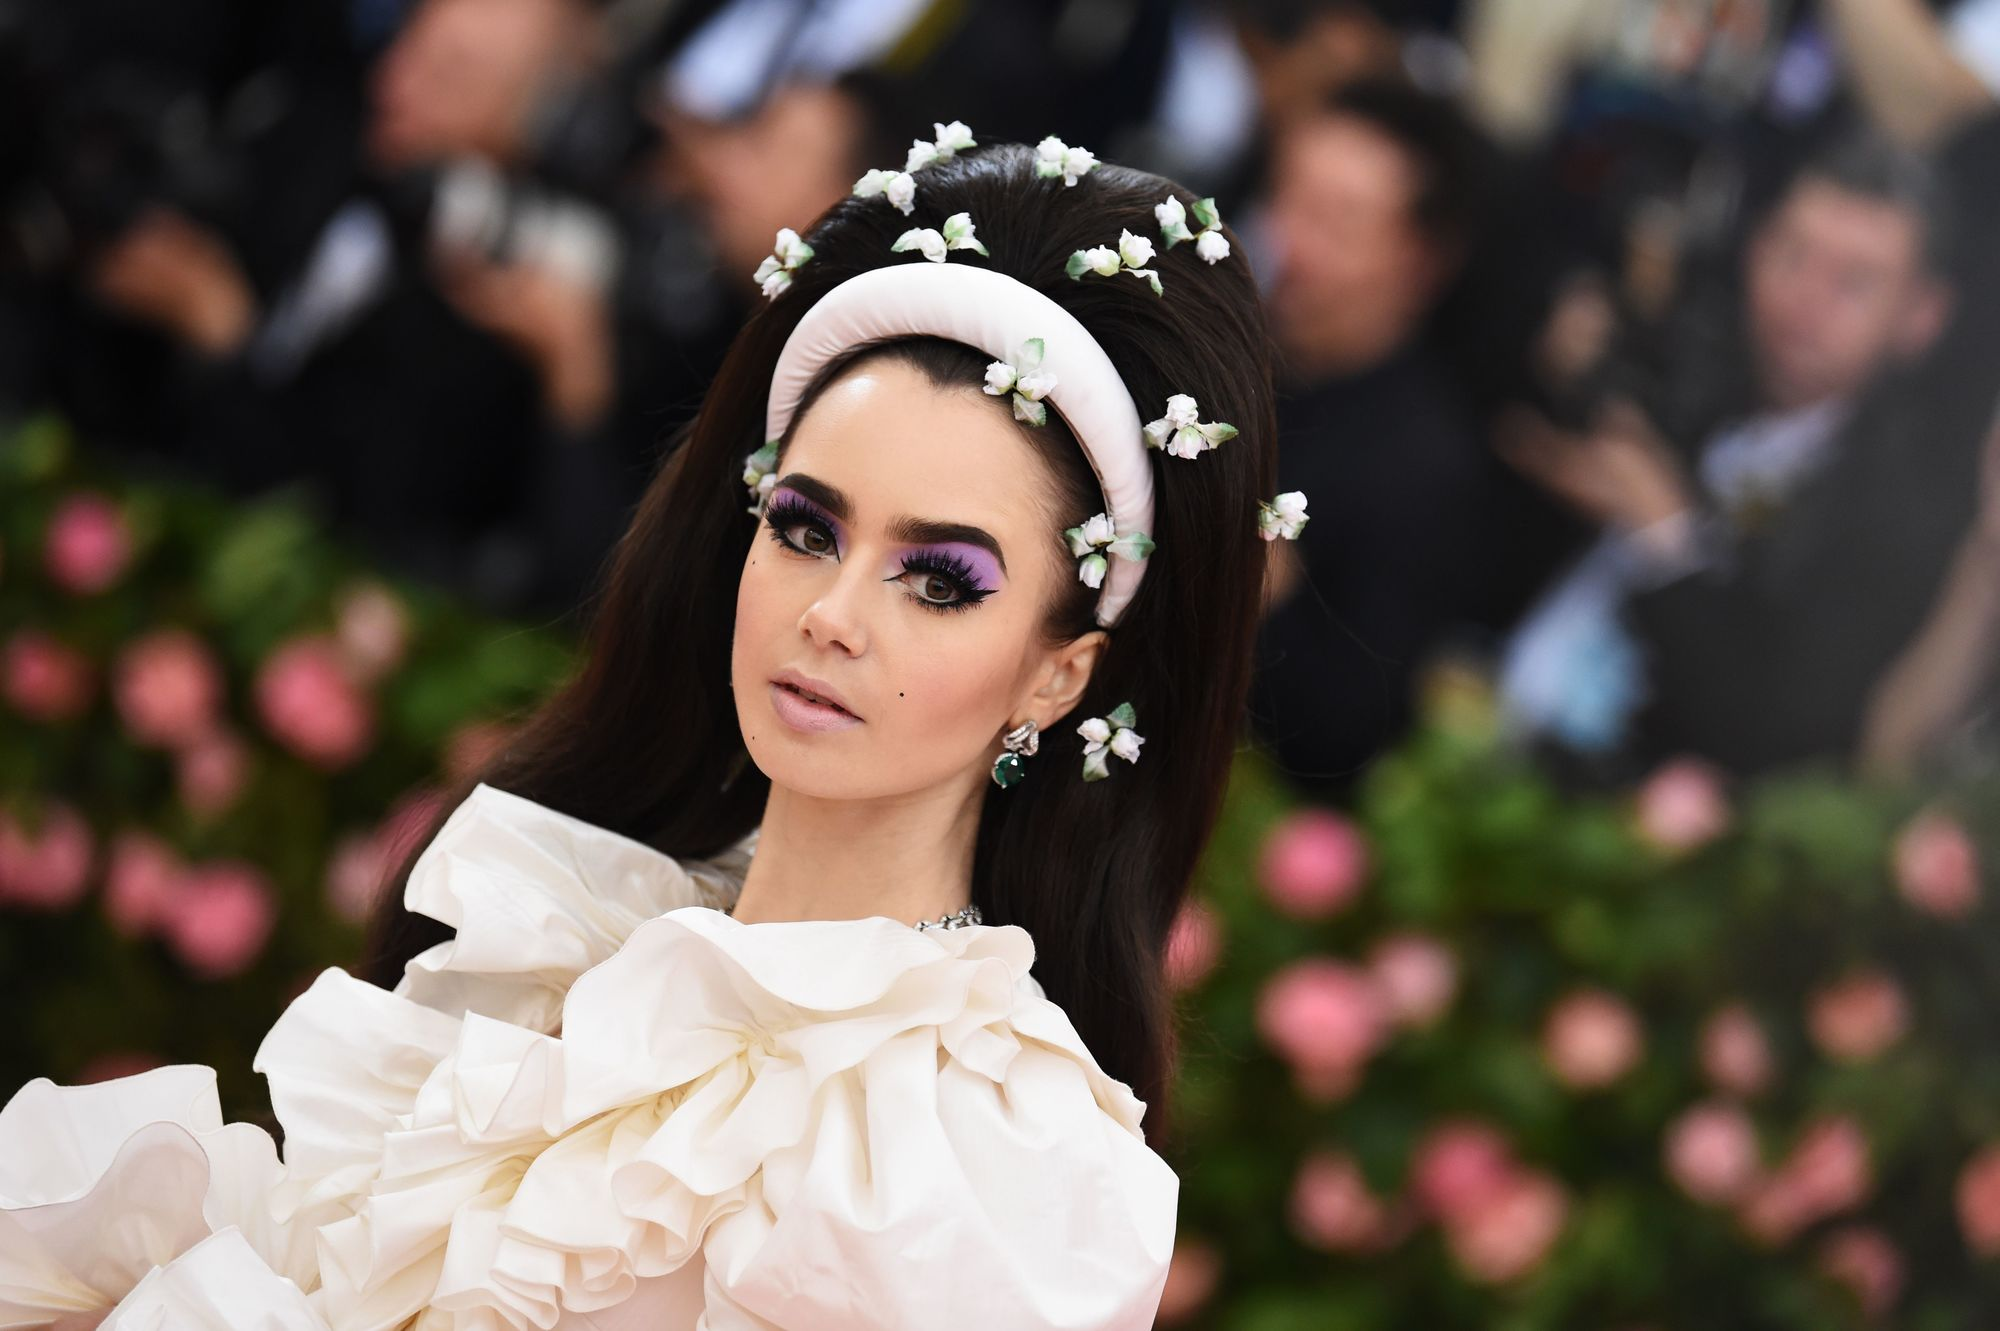 Lilly Collins con bouffant